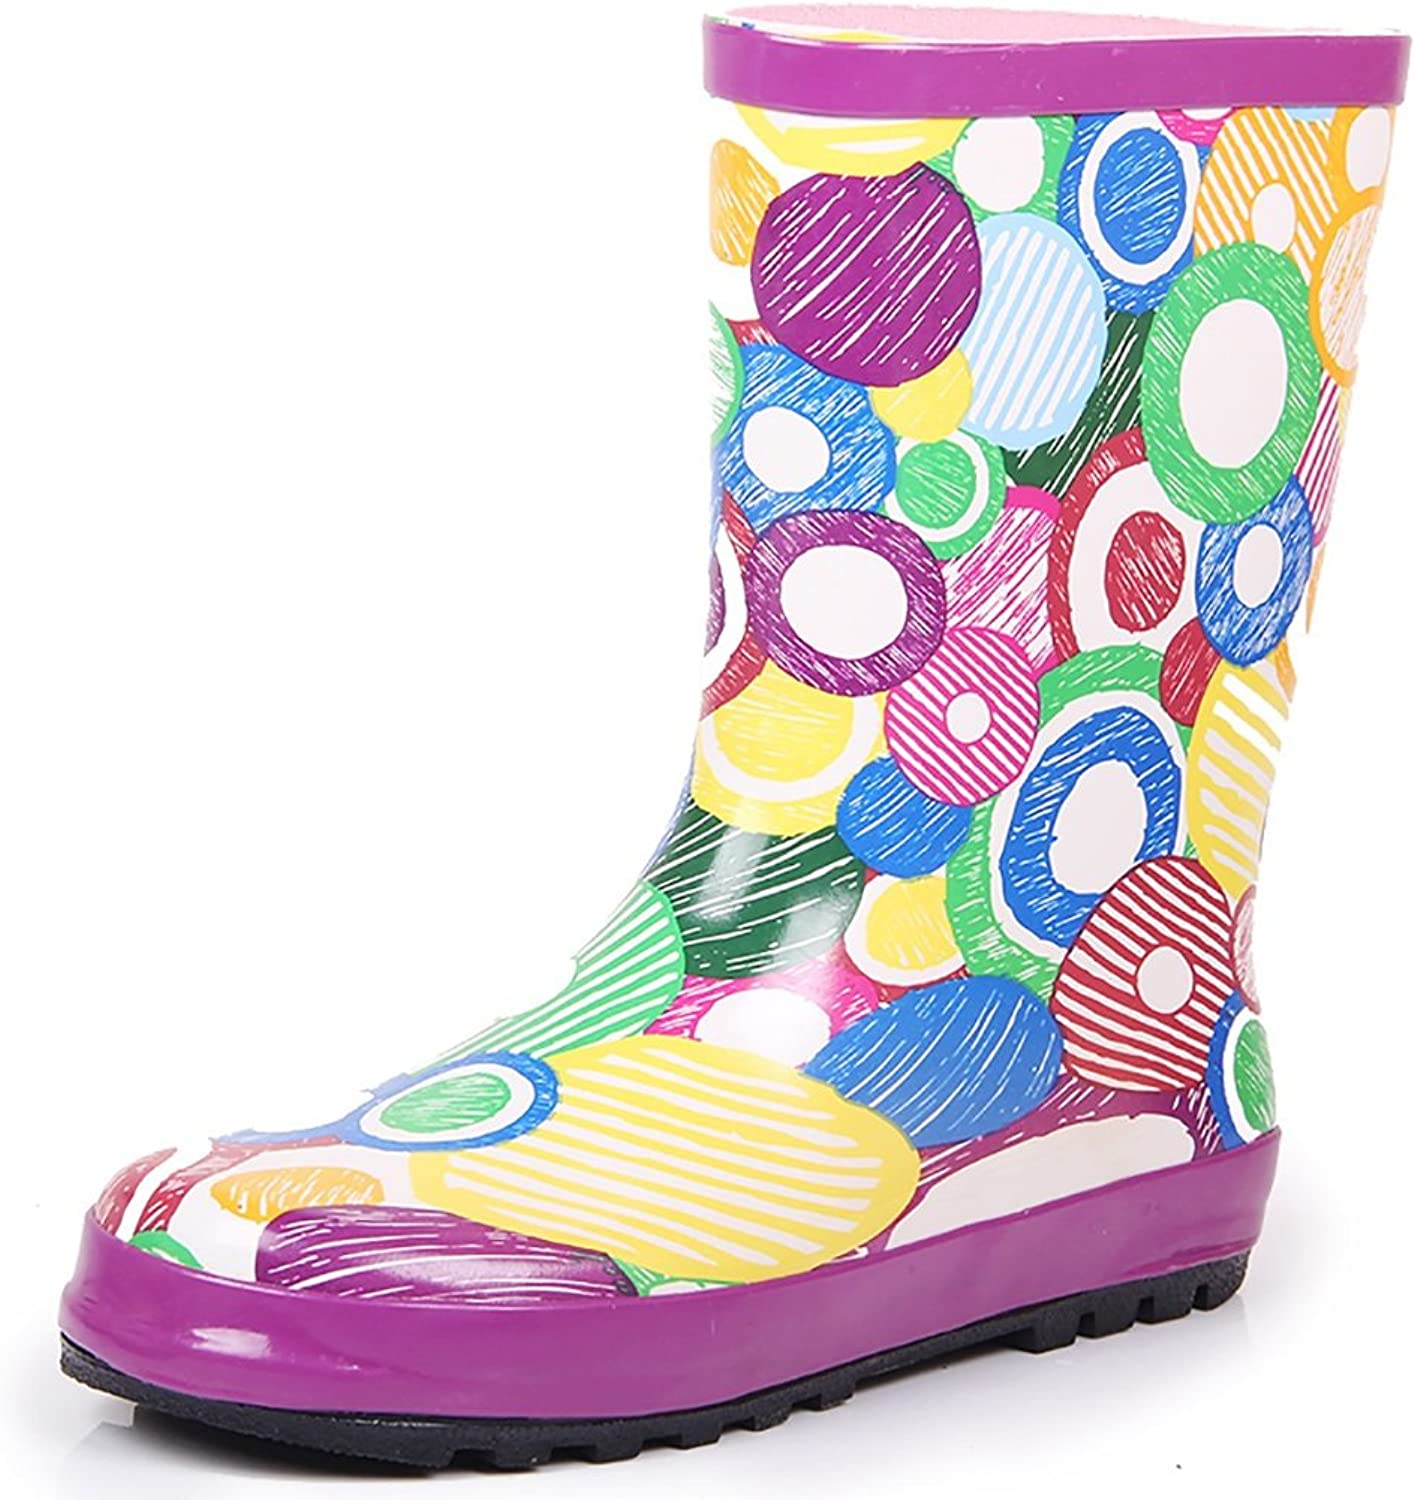 Women's Rain Boots, Women's Flat Boots Rain Boots, Anti-Slip Boots, Cartoon Fashion Water shoes